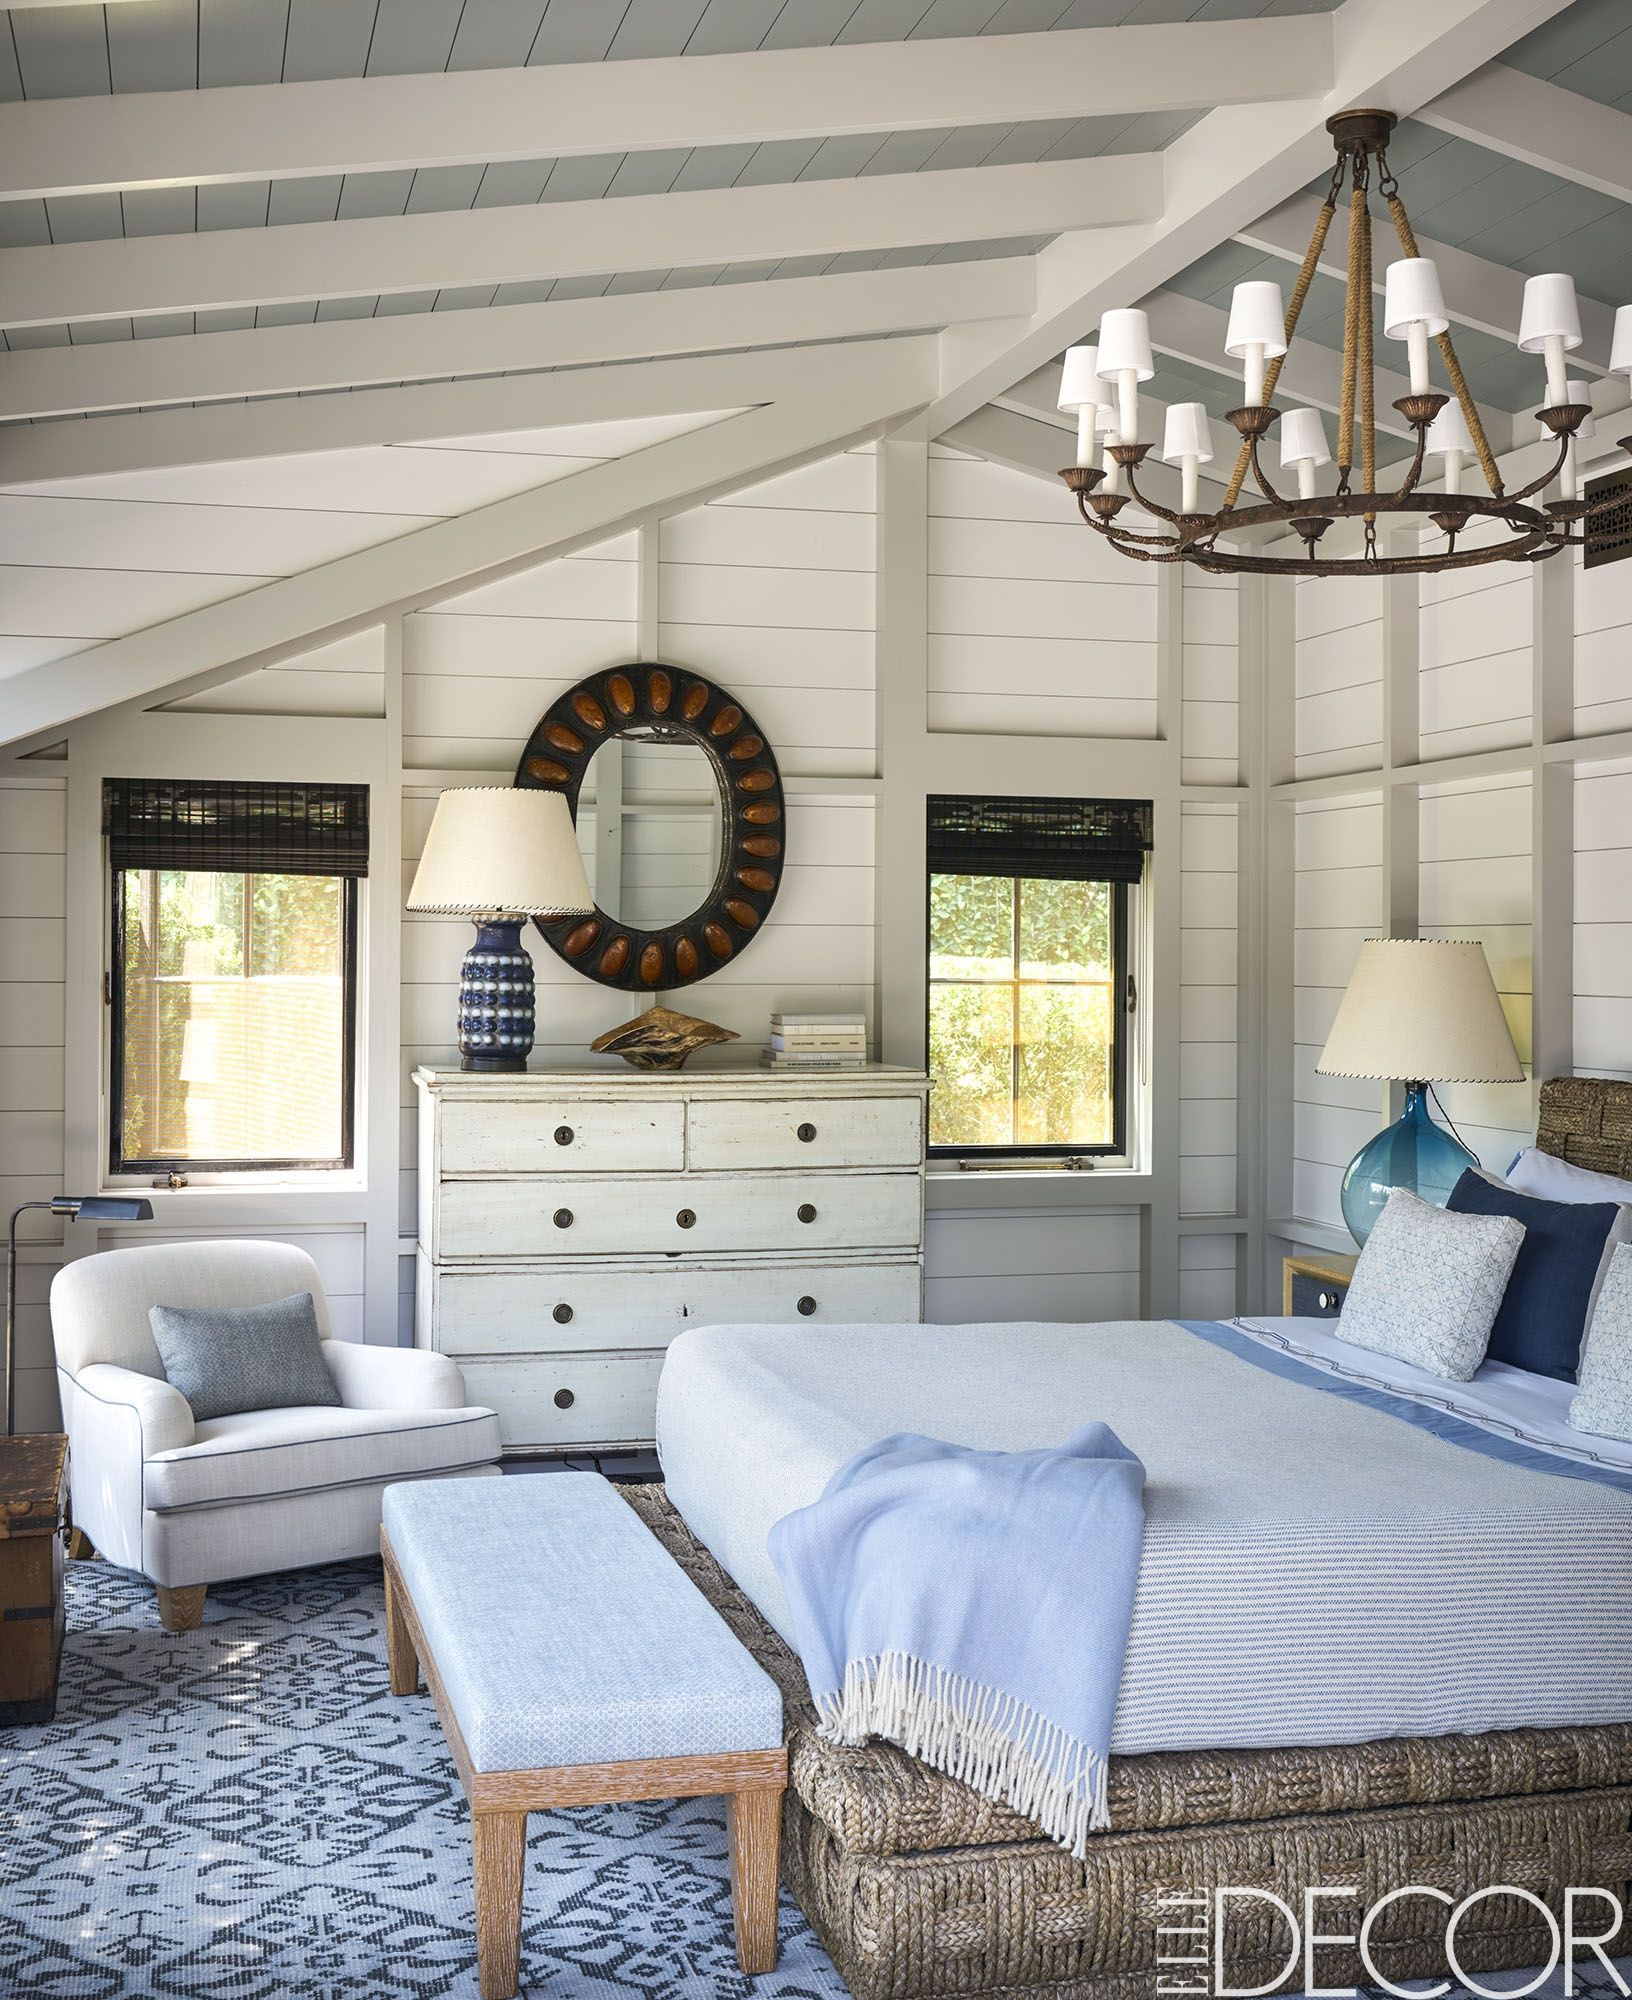 33 Coastal Home Decor Ideas